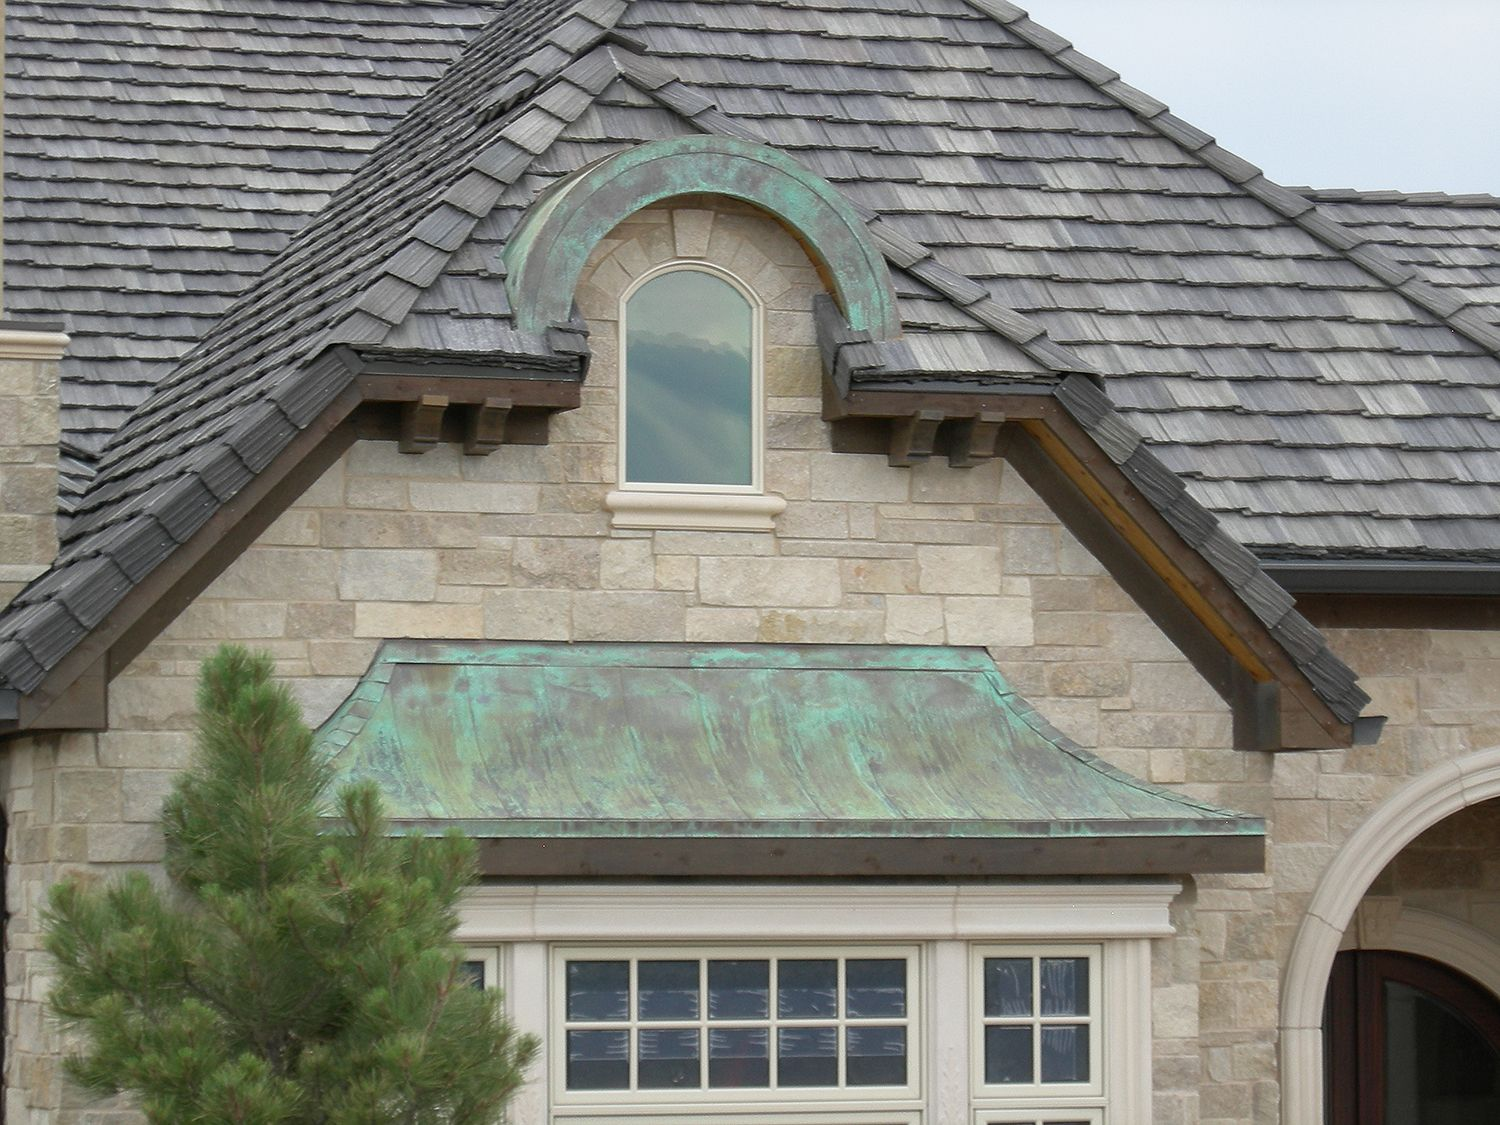 Photo Property Of Craft Corp Wheat Ridge Co 16 Oz Artificial Patina Exterior Accents With Concave Flat Seam Panels Wi Copper Roof Metal Shingle Roof Roofing